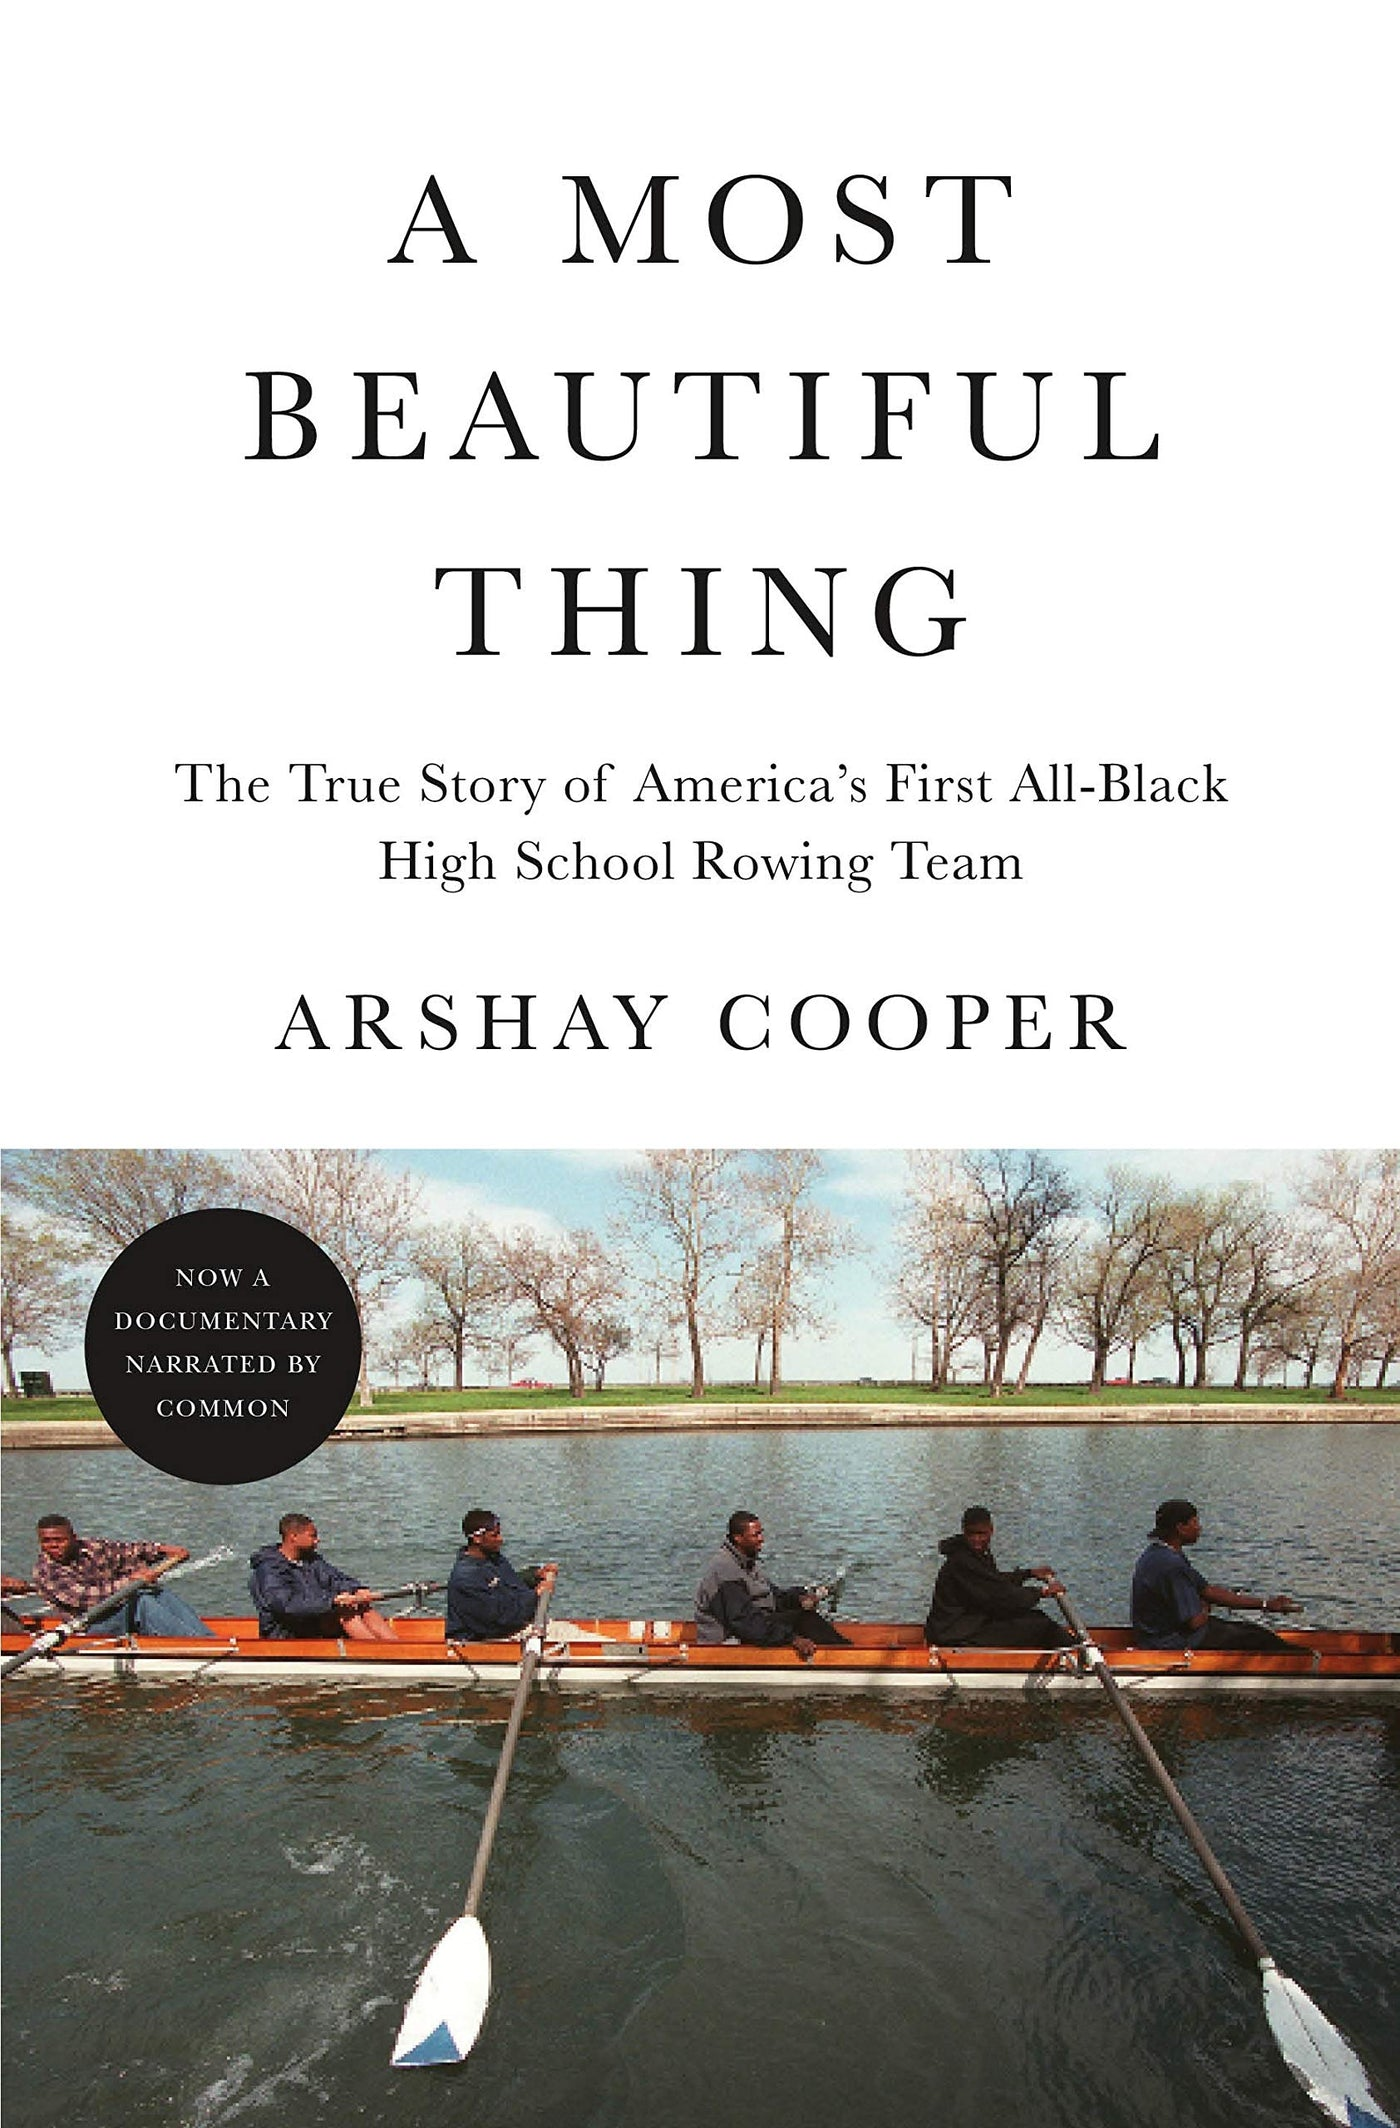 A Most Beautiful Thing: The True Story of America's First All-Black High School Rowing Team by Arshay Cooper